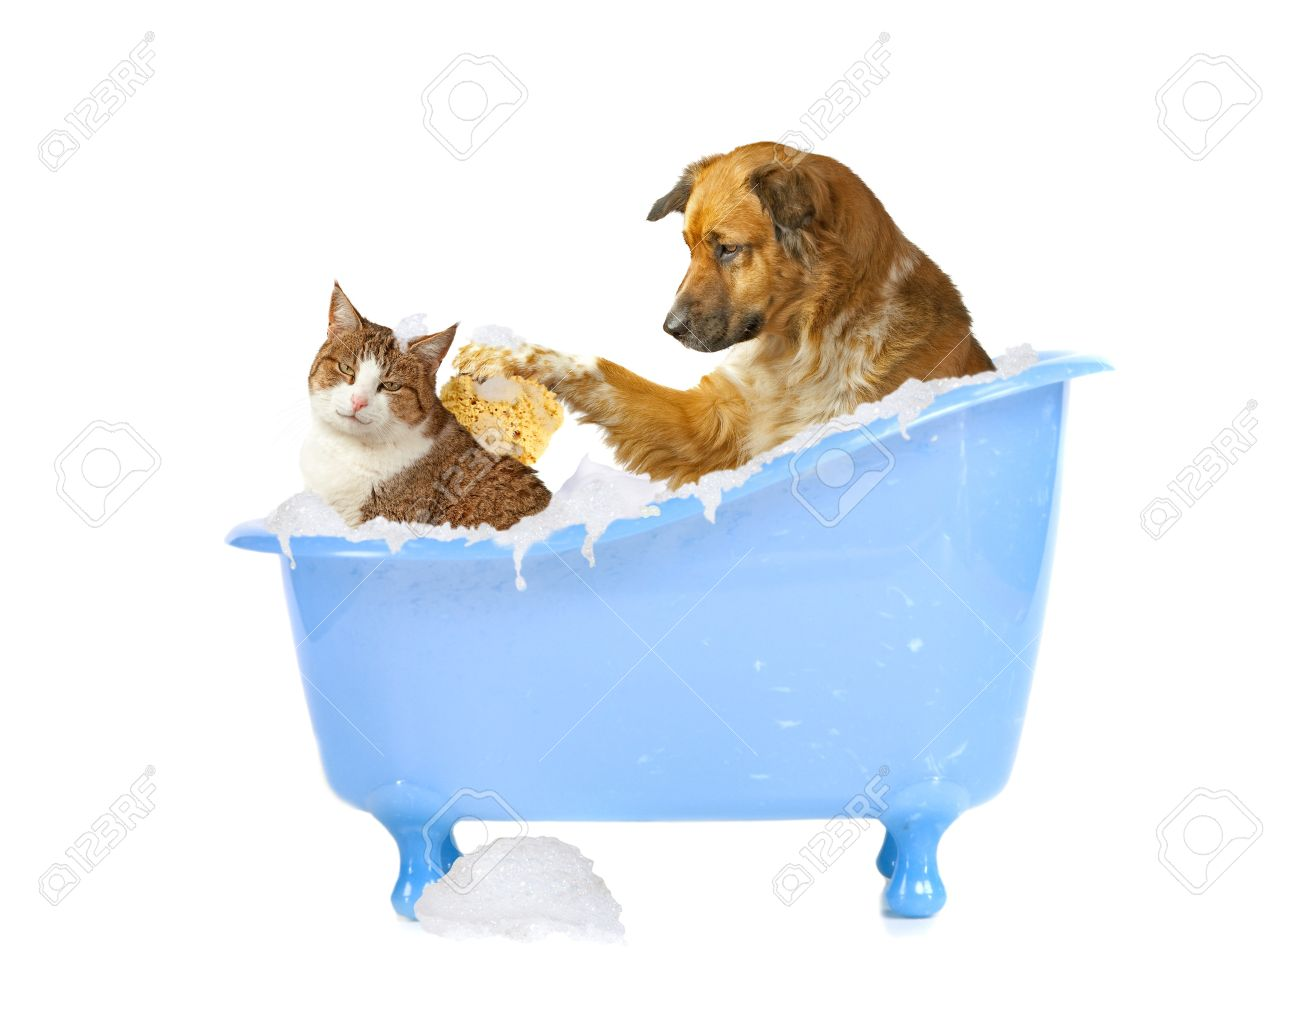 cat lick dog and